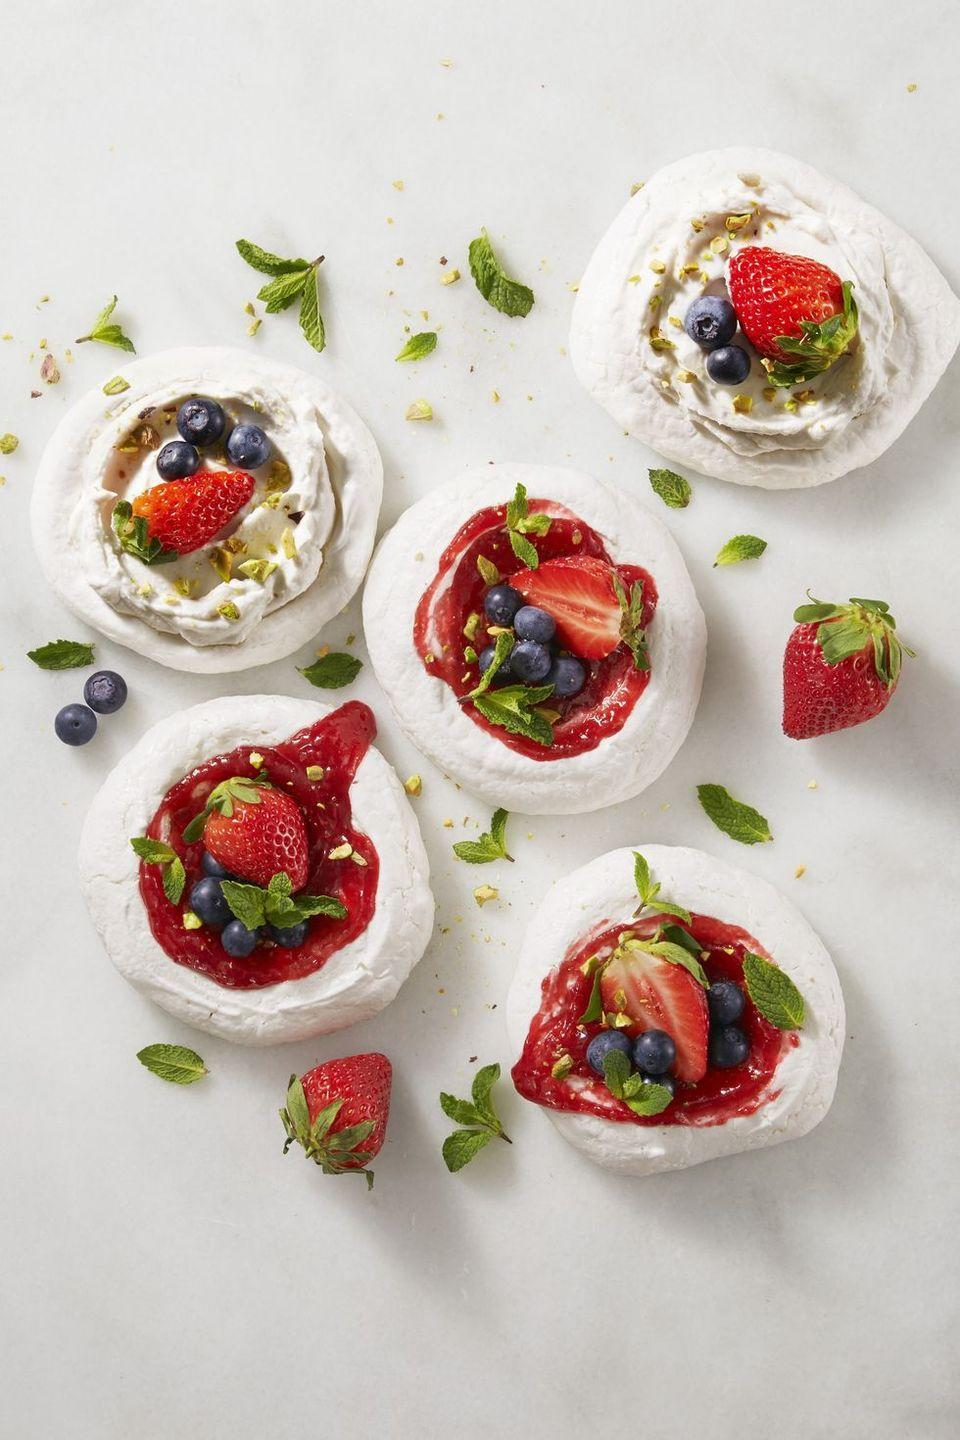 """<p>Because your Mom hasn't lived until she's tried whipped coconut cream.</p><p><em><a href=""""https://www.goodhousekeeping.com/food-recipes/a38871/magic-mini-pavlovas-recipe/"""" rel=""""nofollow noopener"""" target=""""_blank"""" data-ylk=""""slk:Get the recipe for Magic Mini Pavlovas »"""" class=""""link rapid-noclick-resp"""">Get the recipe for Magic Mini Pavlovas »</a></em></p>"""